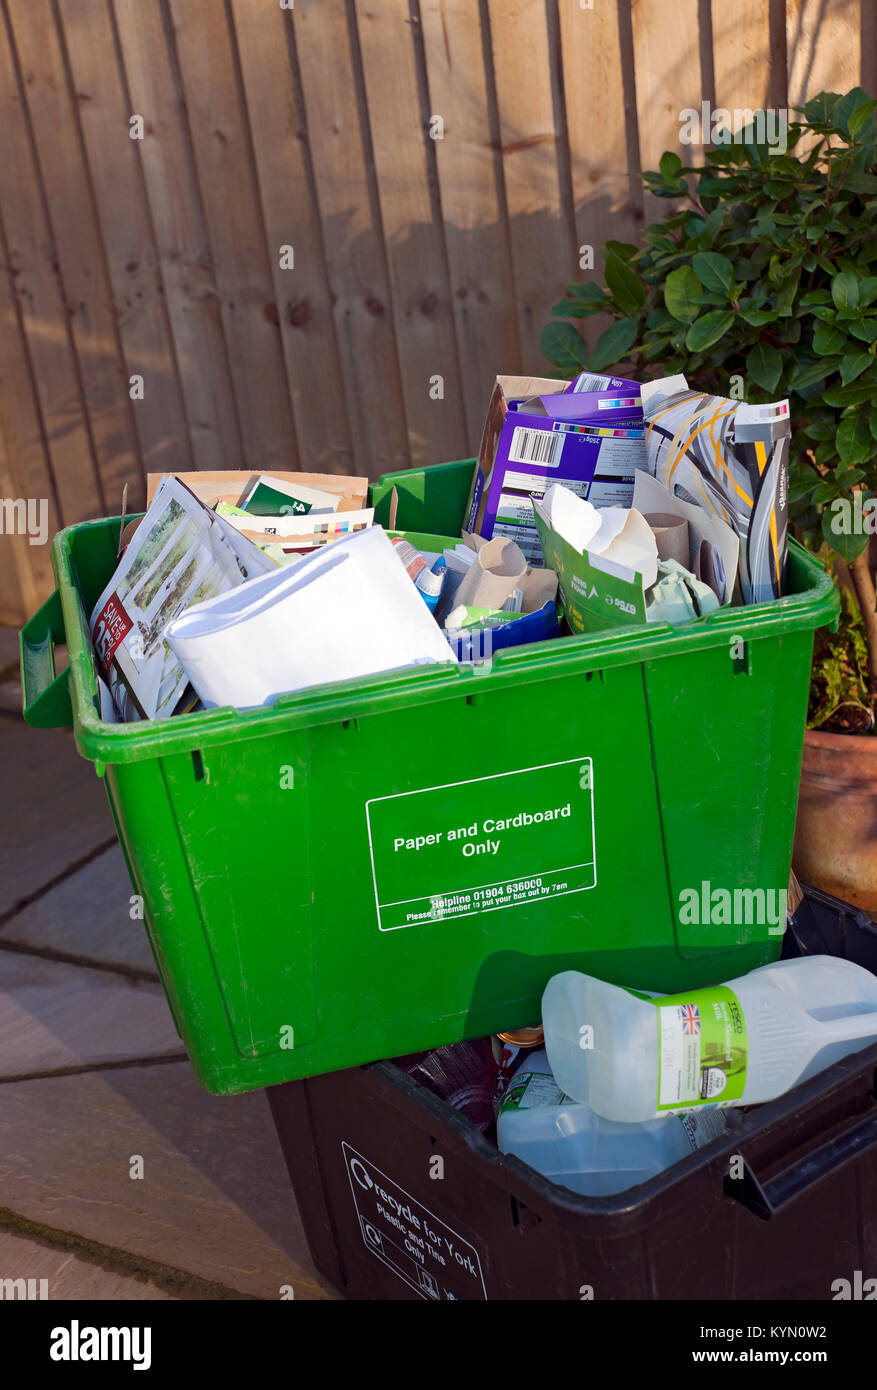 Paper and Card Recycling Boxes England UK United Kingdom GB Great Britain - Stock Image